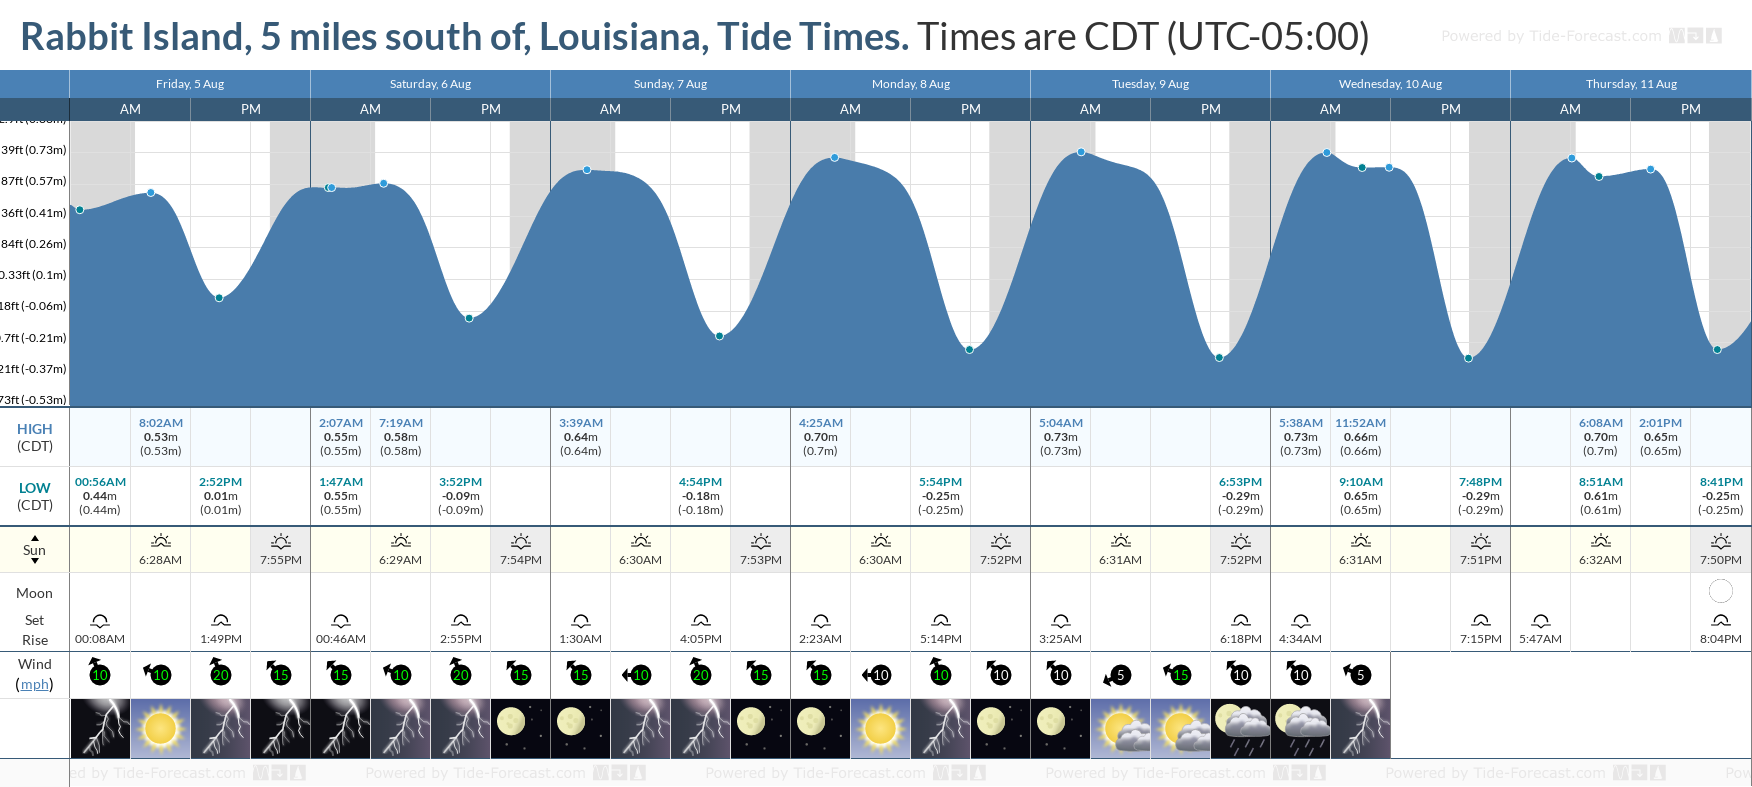 Rabbit Island, 5 miles south of, Louisiana Tide Chart including high and low tide tide times for the next 7 days